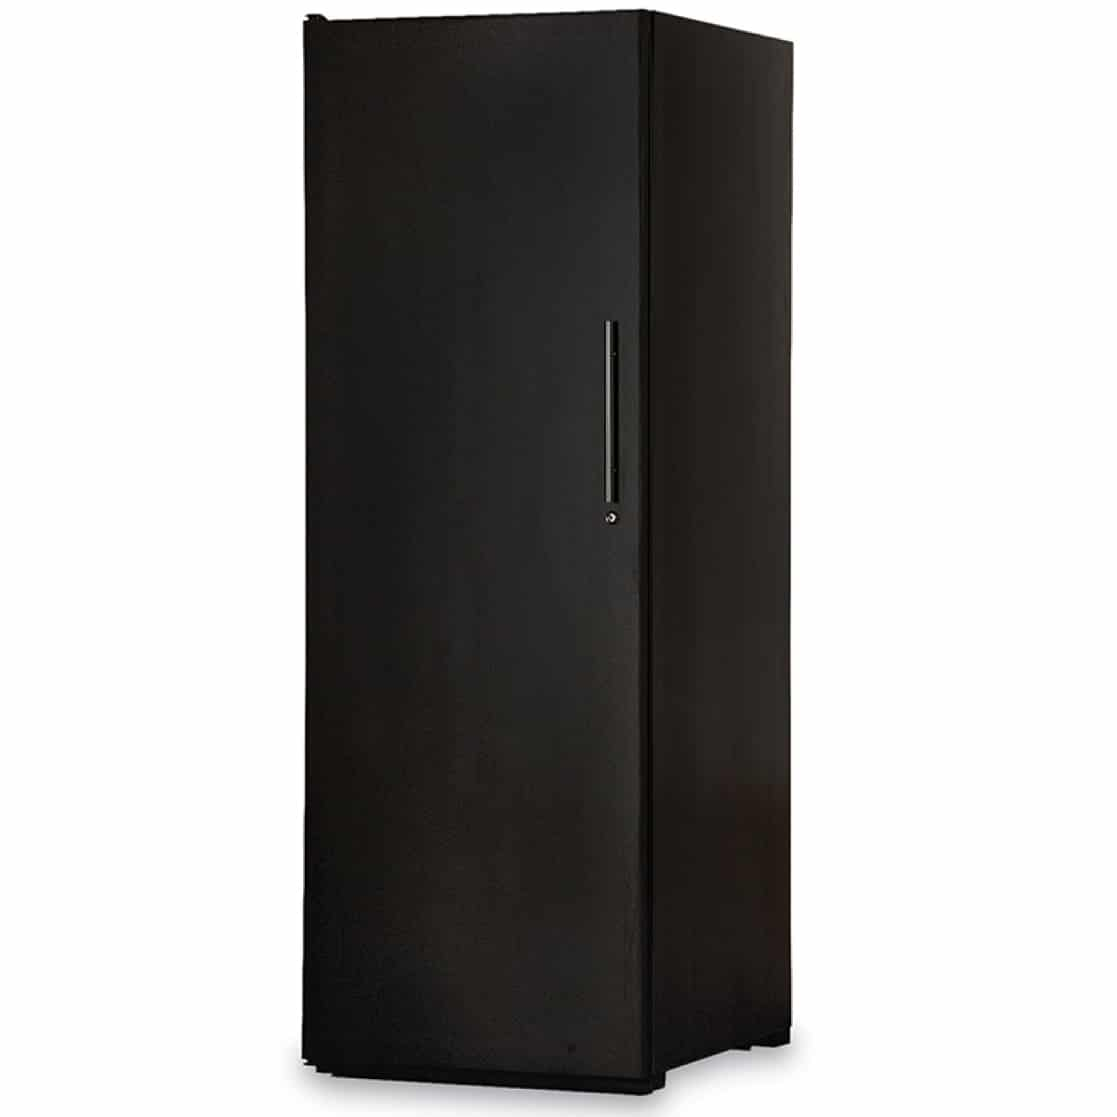 Click here to see more BILD styled wine cabinets